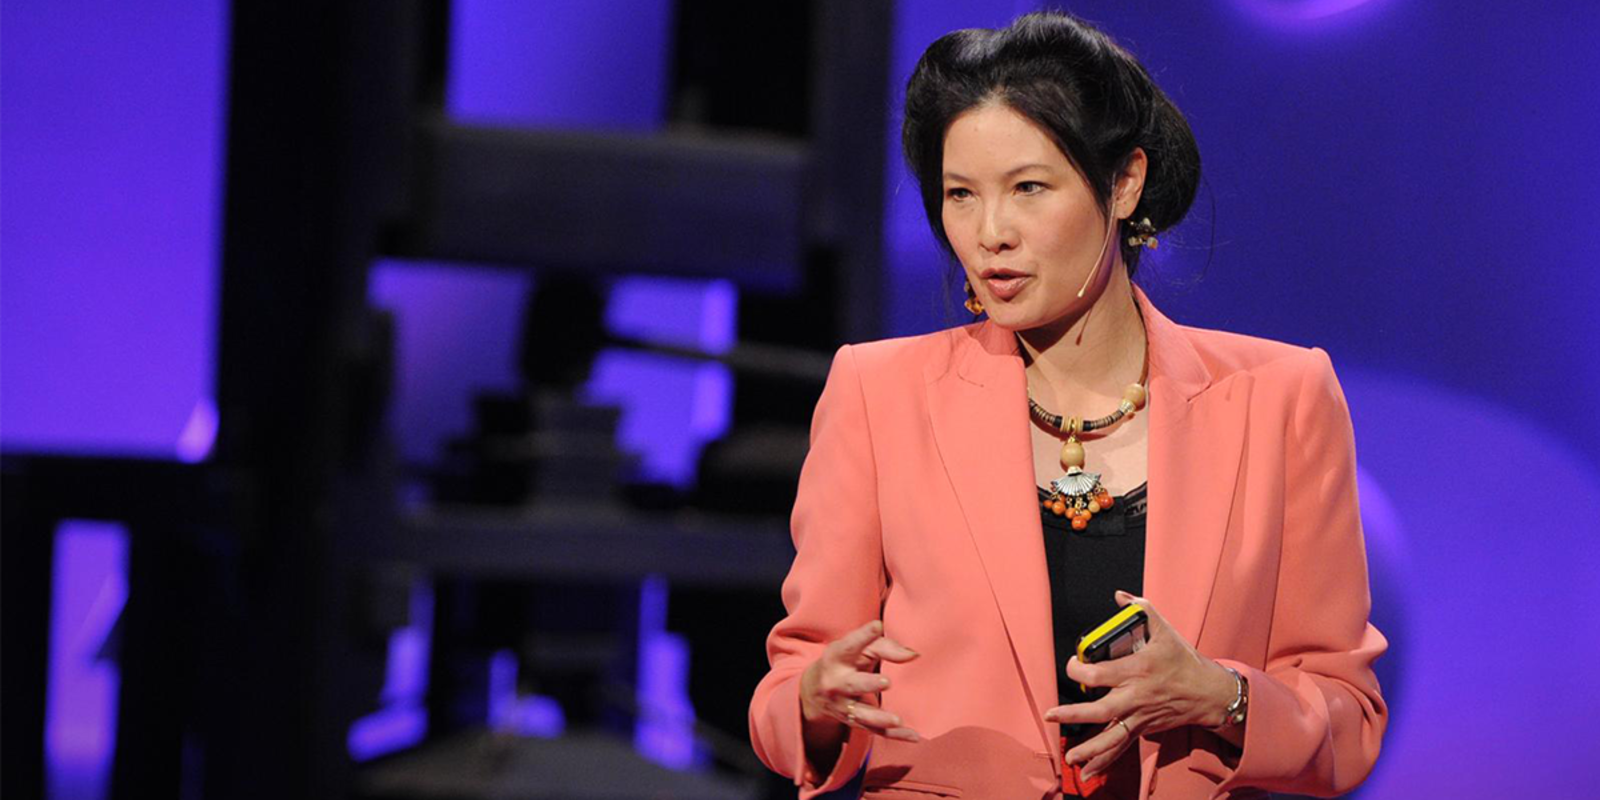 The Most Empowering TED Talks Every Woman Needs to Watch. Reclaim your life from negative media and fill your leisure time with some positive inspiration.